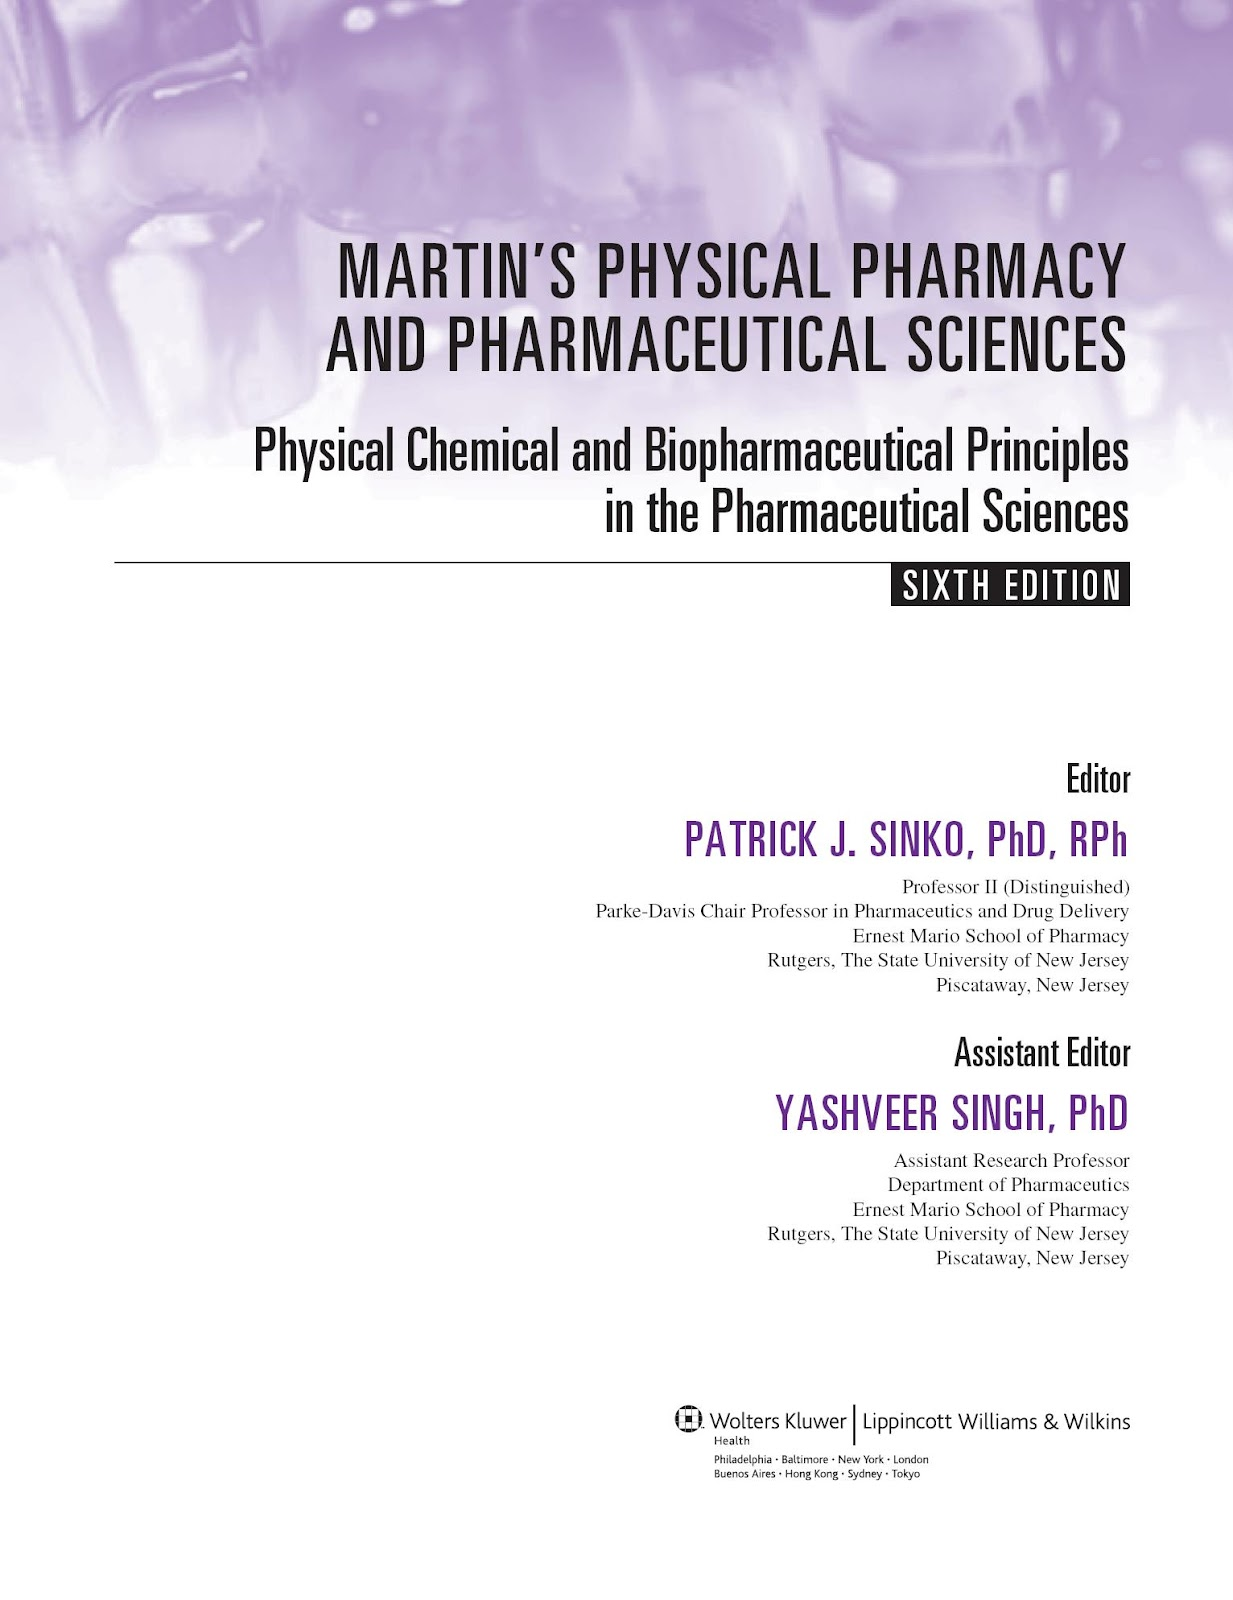 martins physical pharmacy 6th edition pdf free download